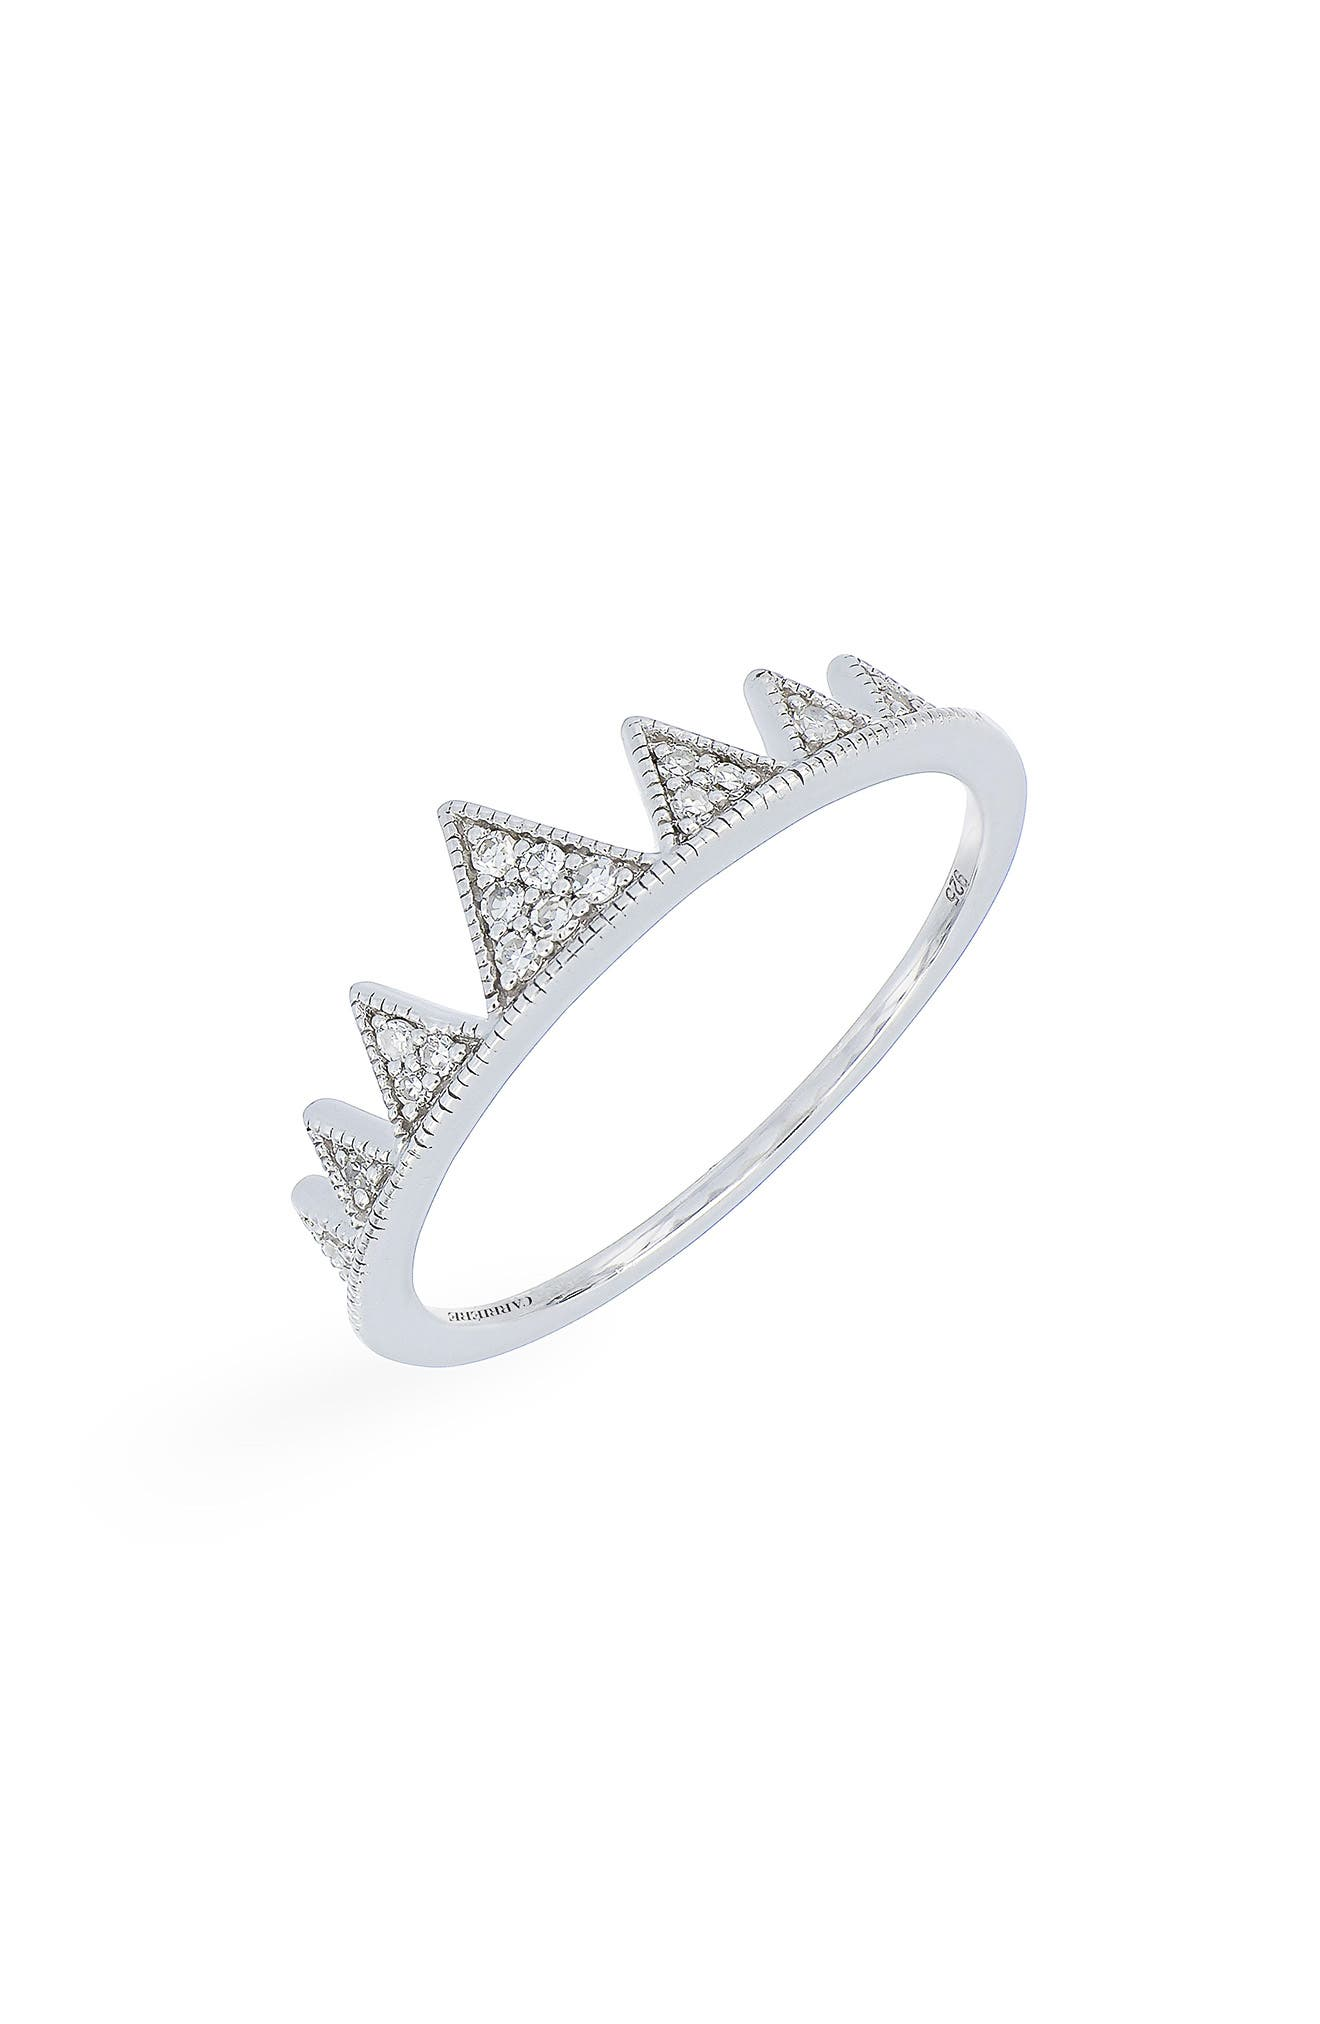 Carrière Diamond Crown Ring,                             Main thumbnail 1, color,                             STERLING SILVER/ DIAMOND